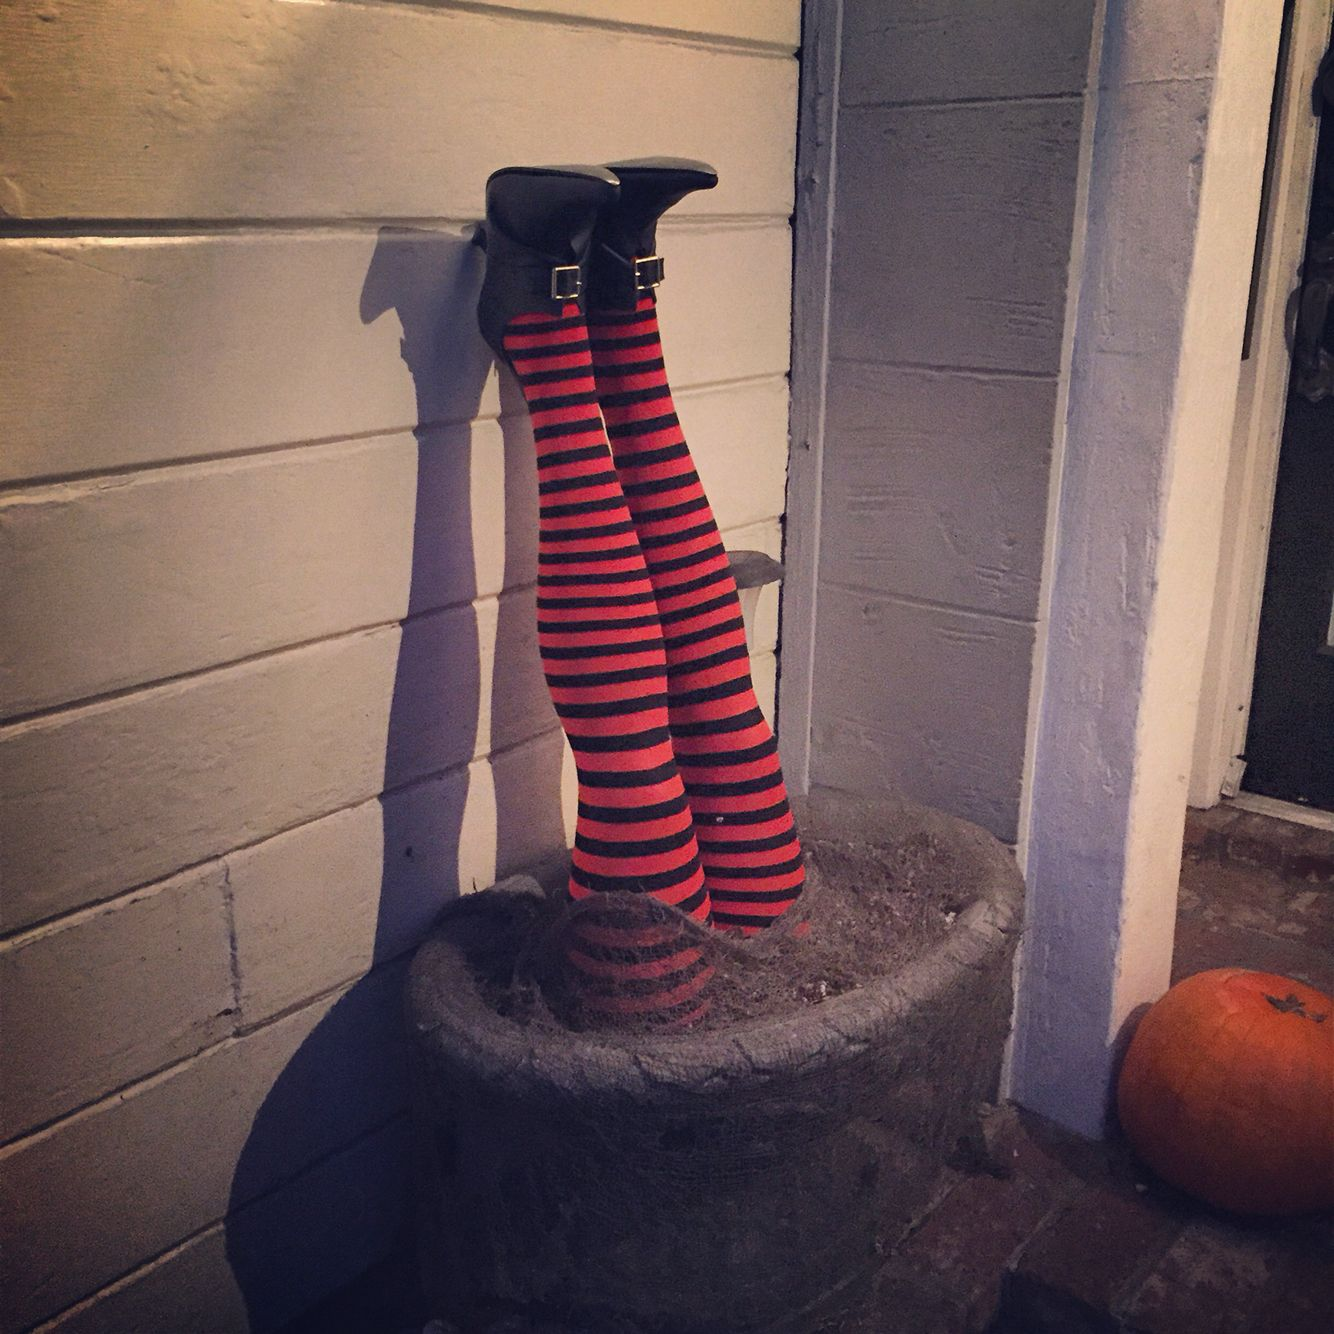 Mannequin legs, striped Halloween leggings, witches shoes for a DIY - front yard halloween decorations